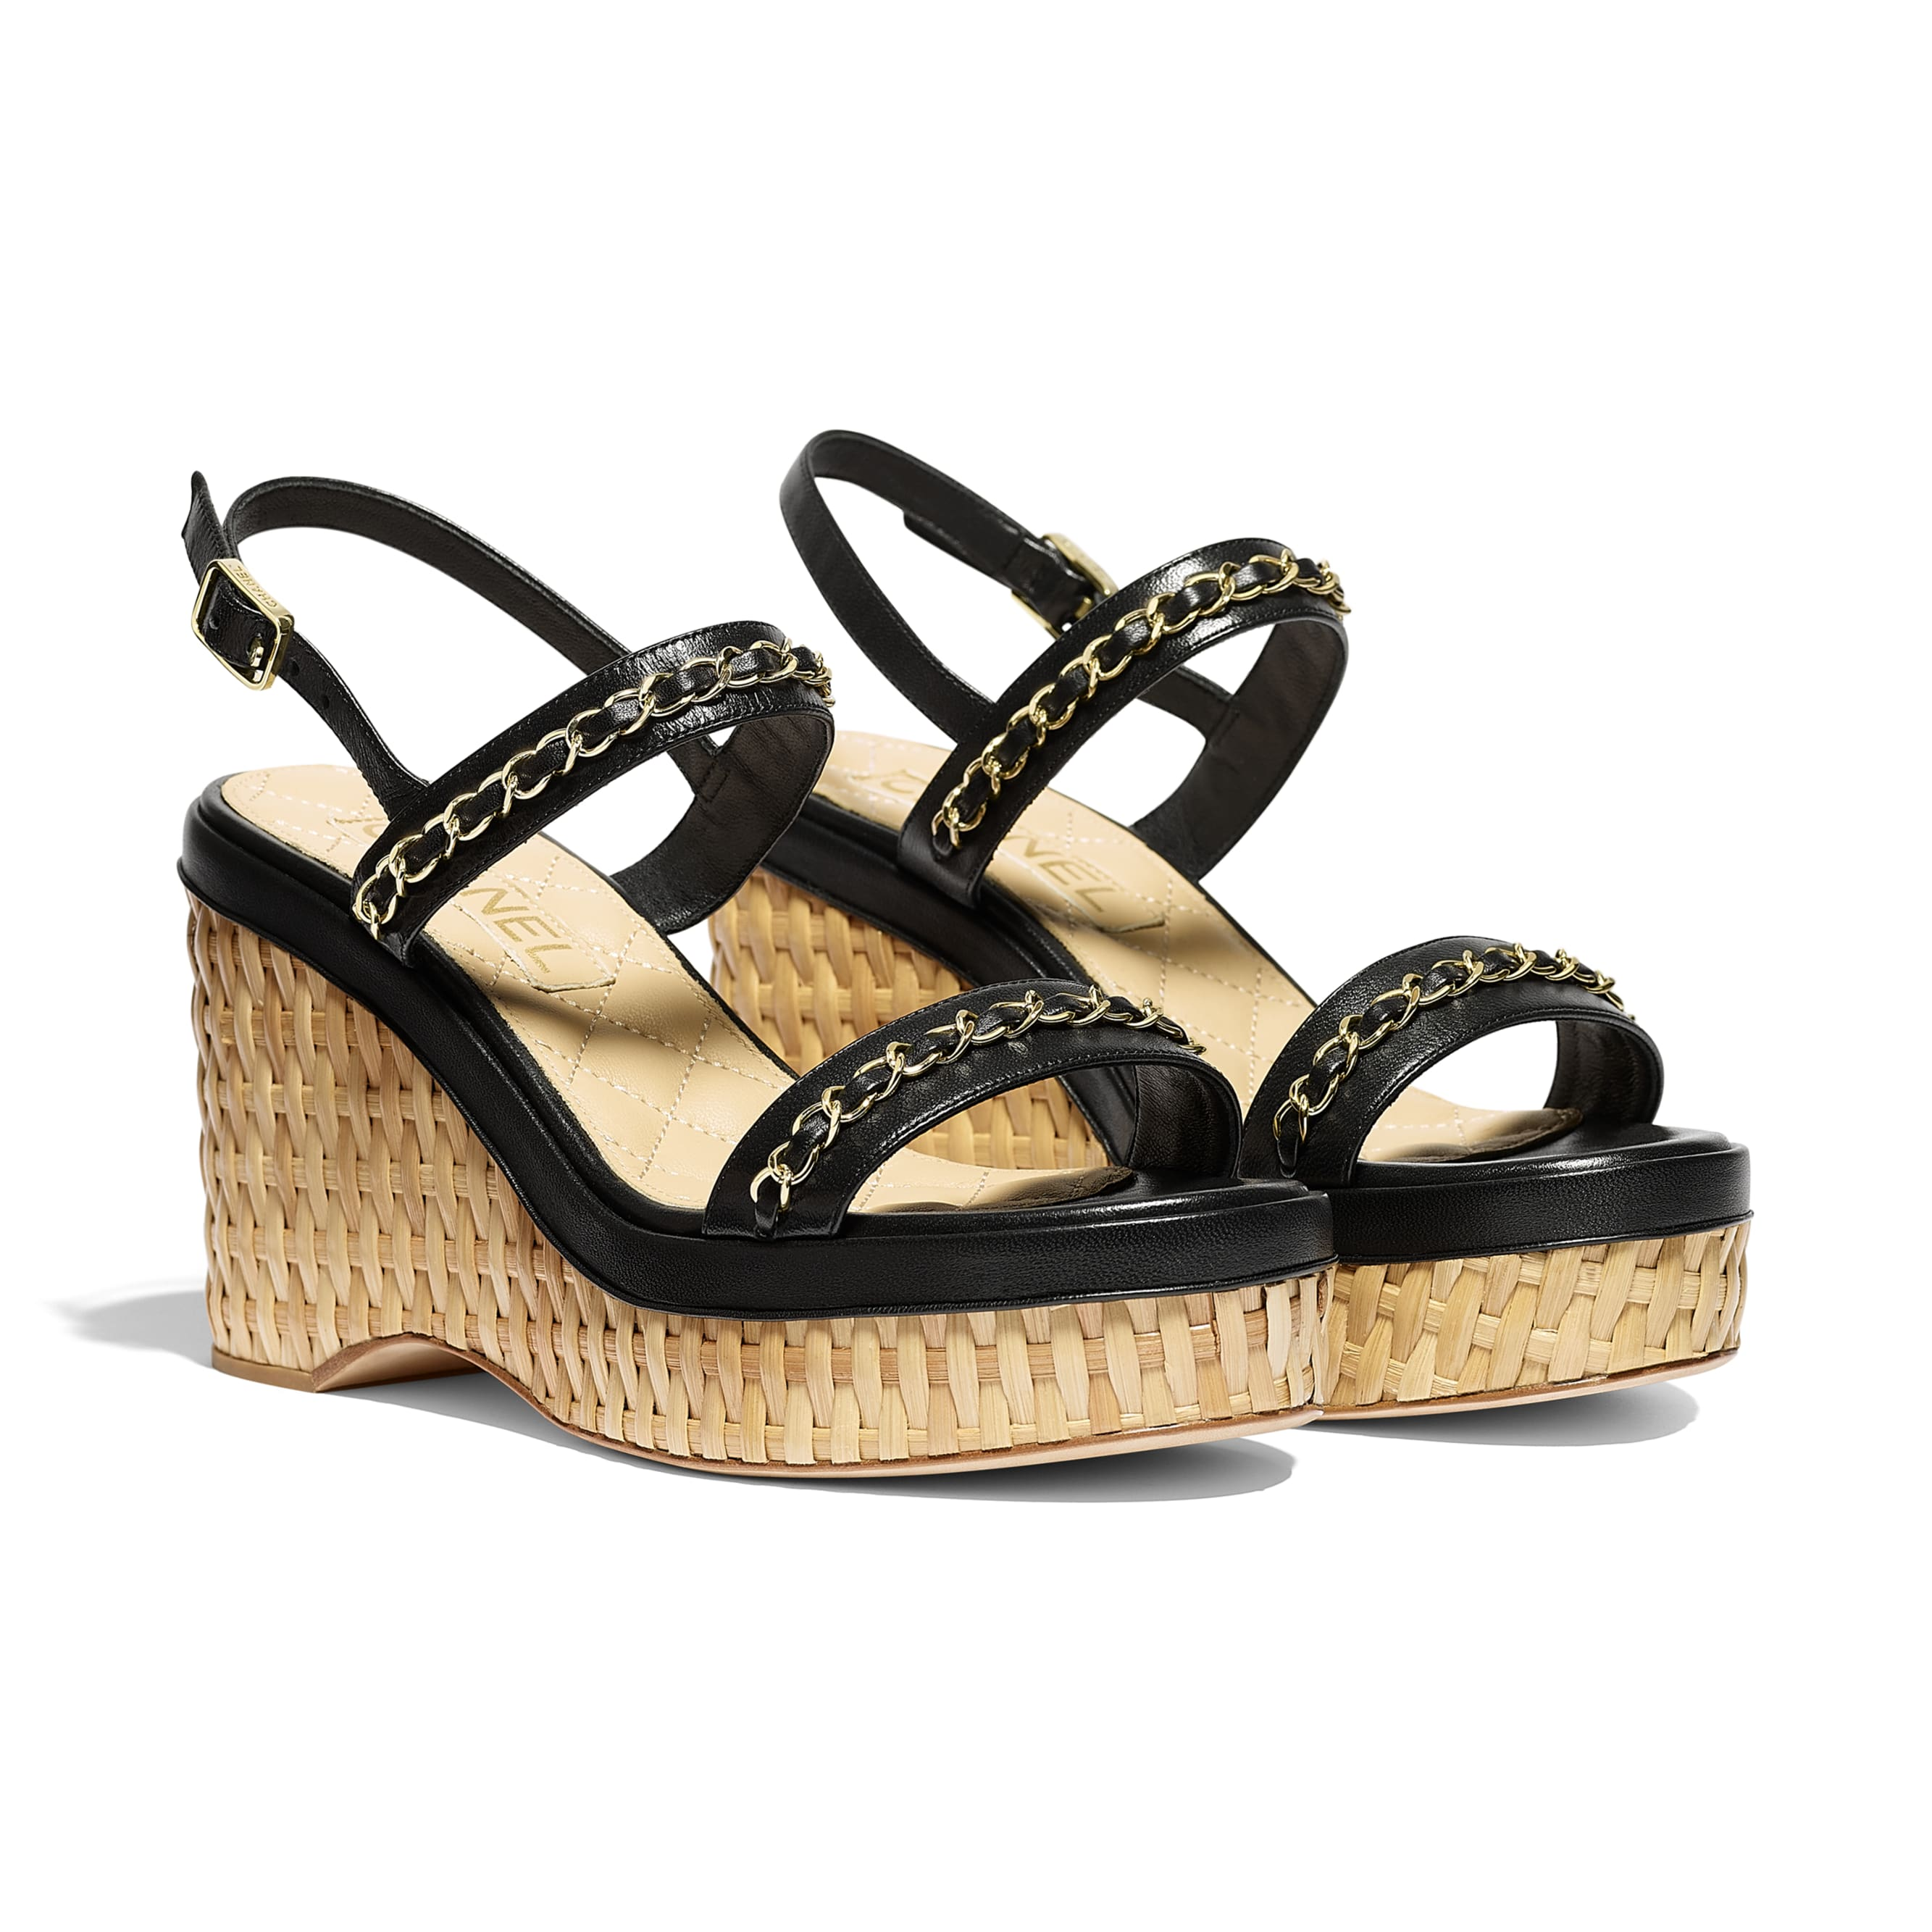 Sandals - Black - Lambskin - CHANEL - Alternative view - see standard sized version